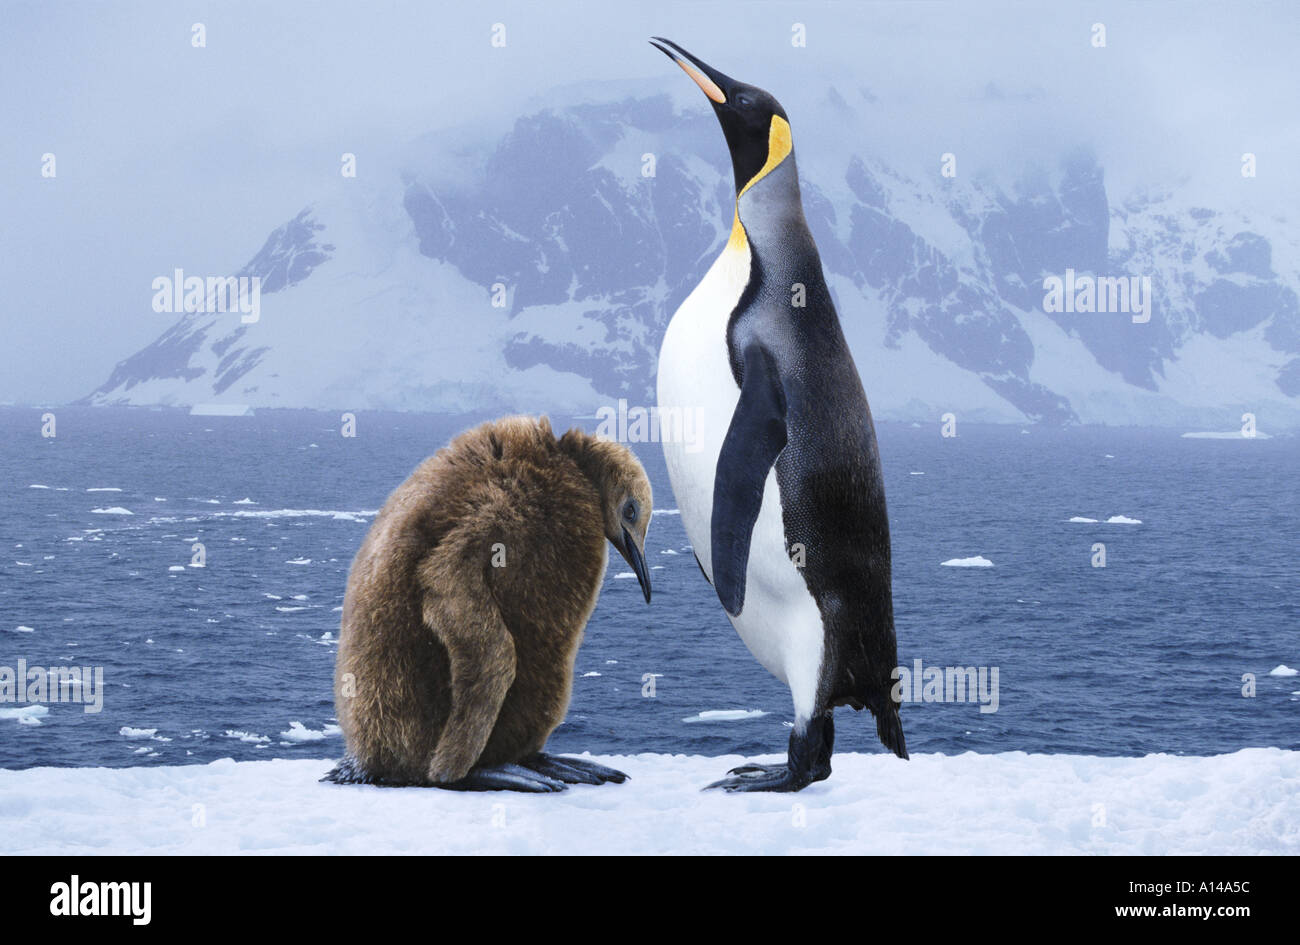 King Penguins South Georgia - Stock Image